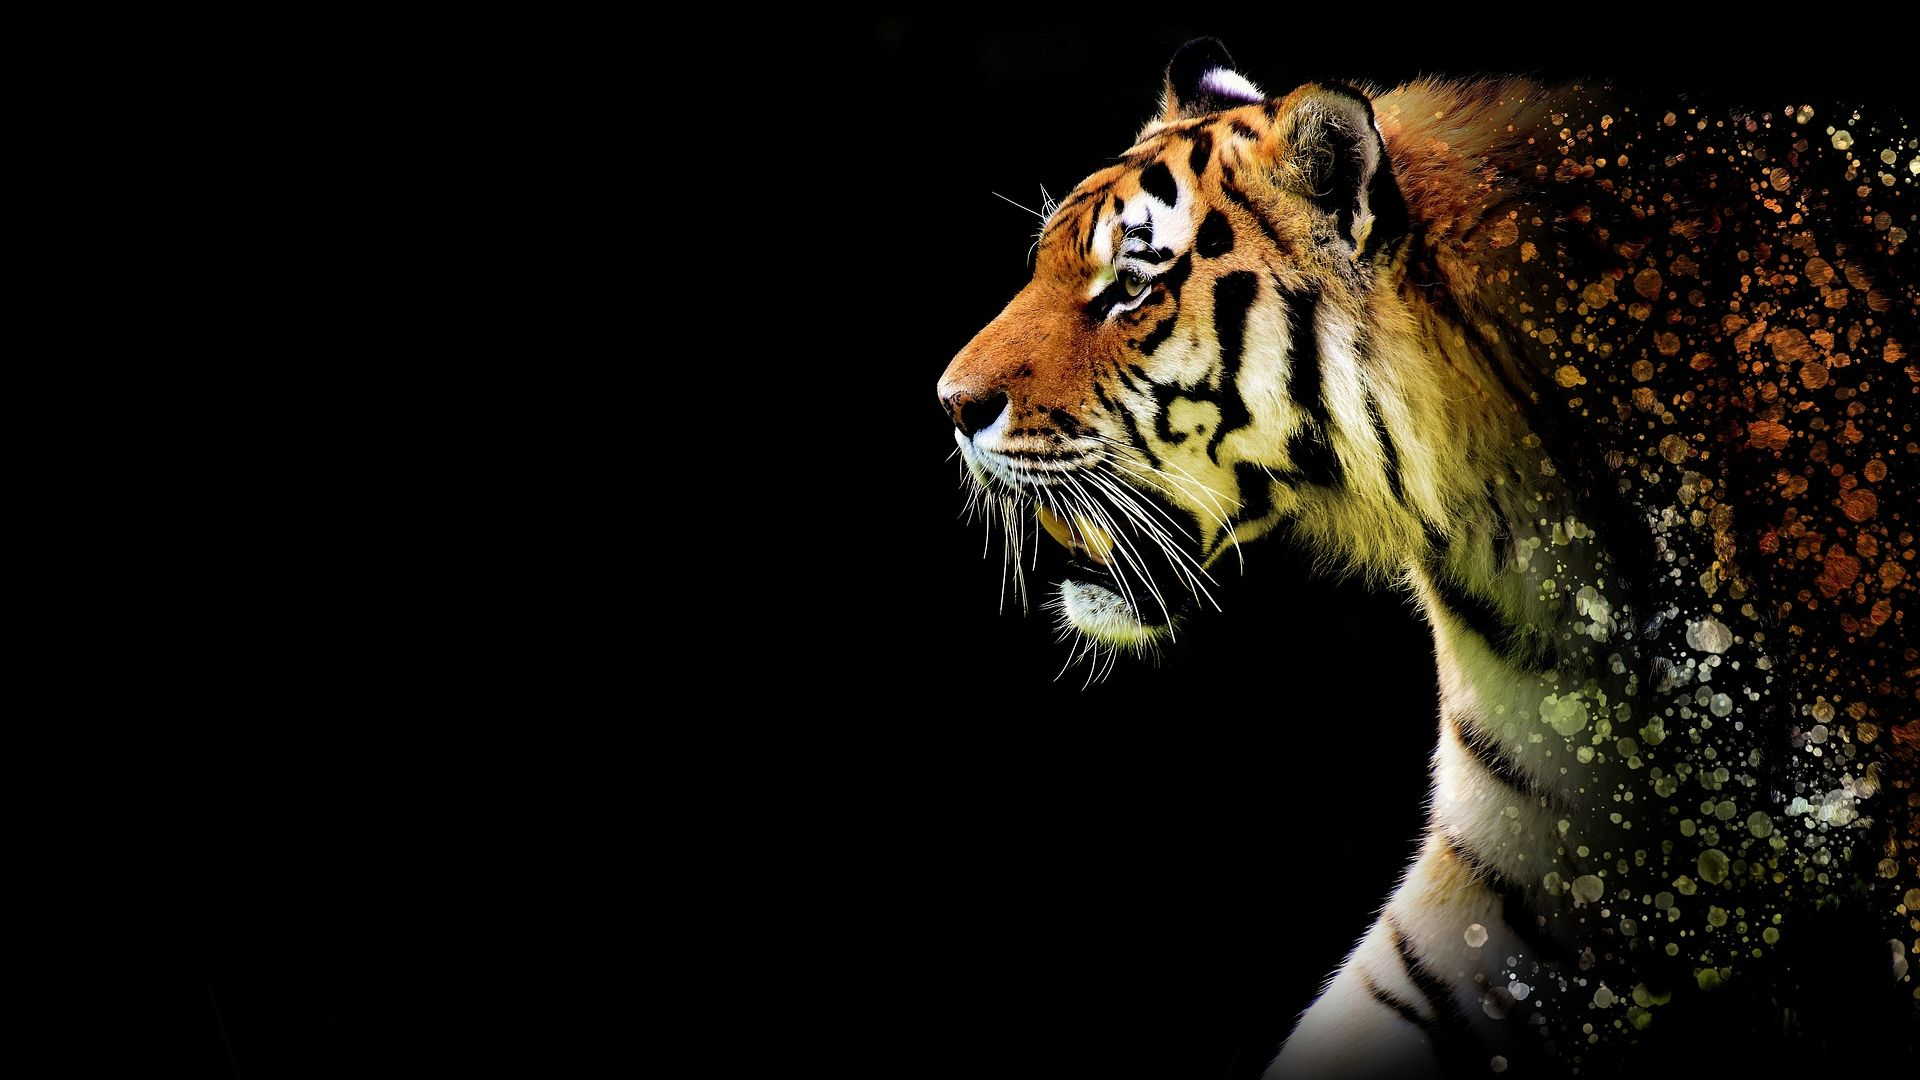 Black Tiger Wallpaper Posted By Ethan Tremblay